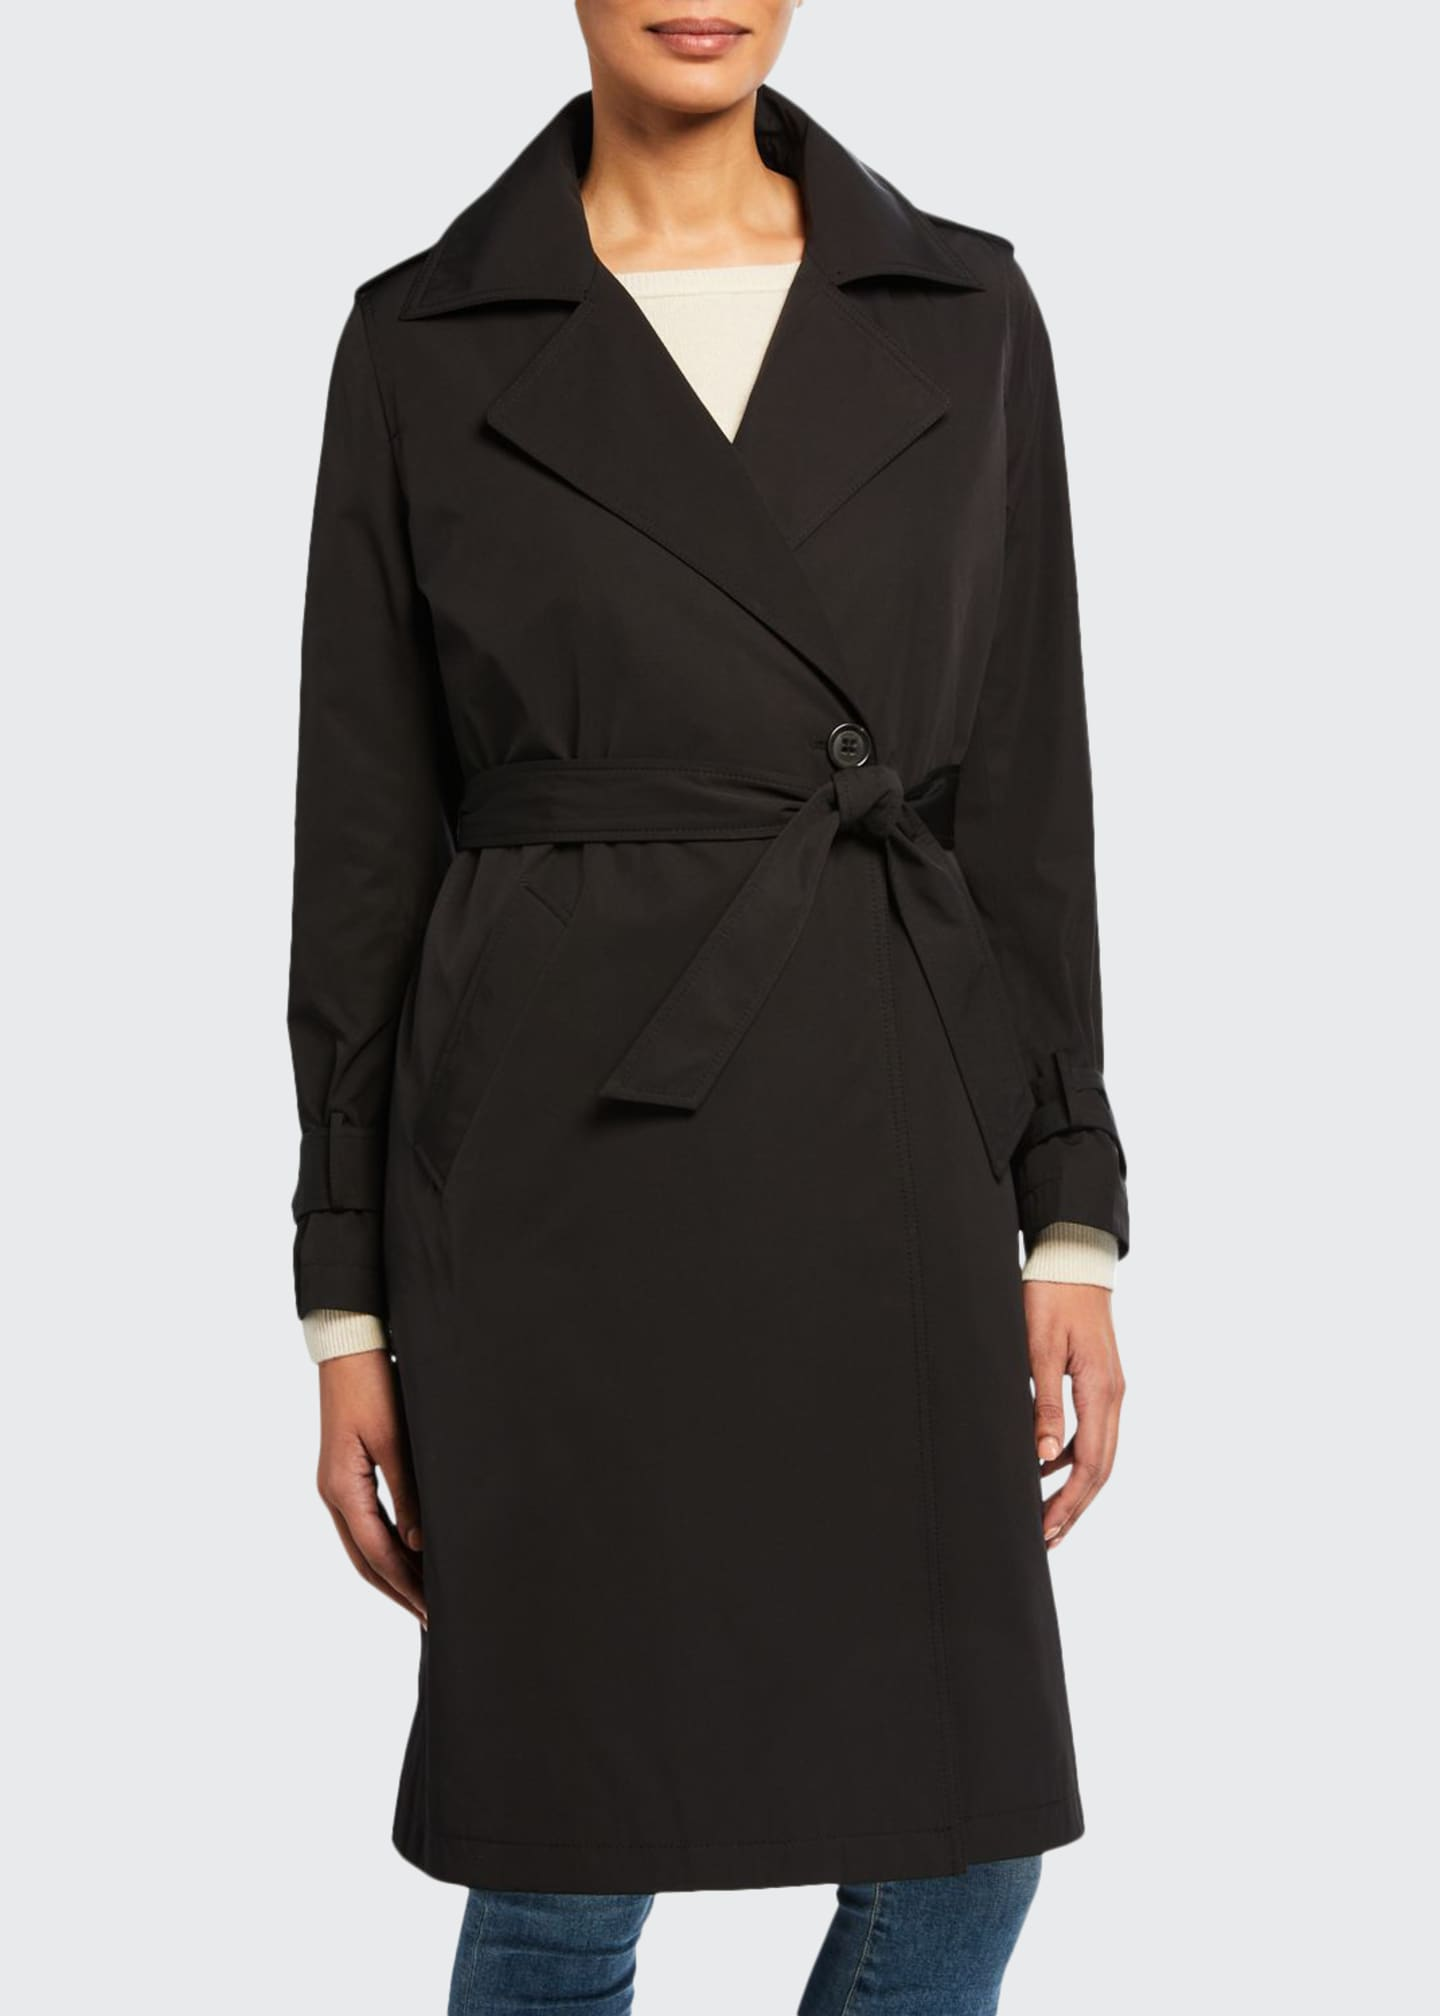 Jane Post Minimalist Trench Coat w/ Detachable Liner